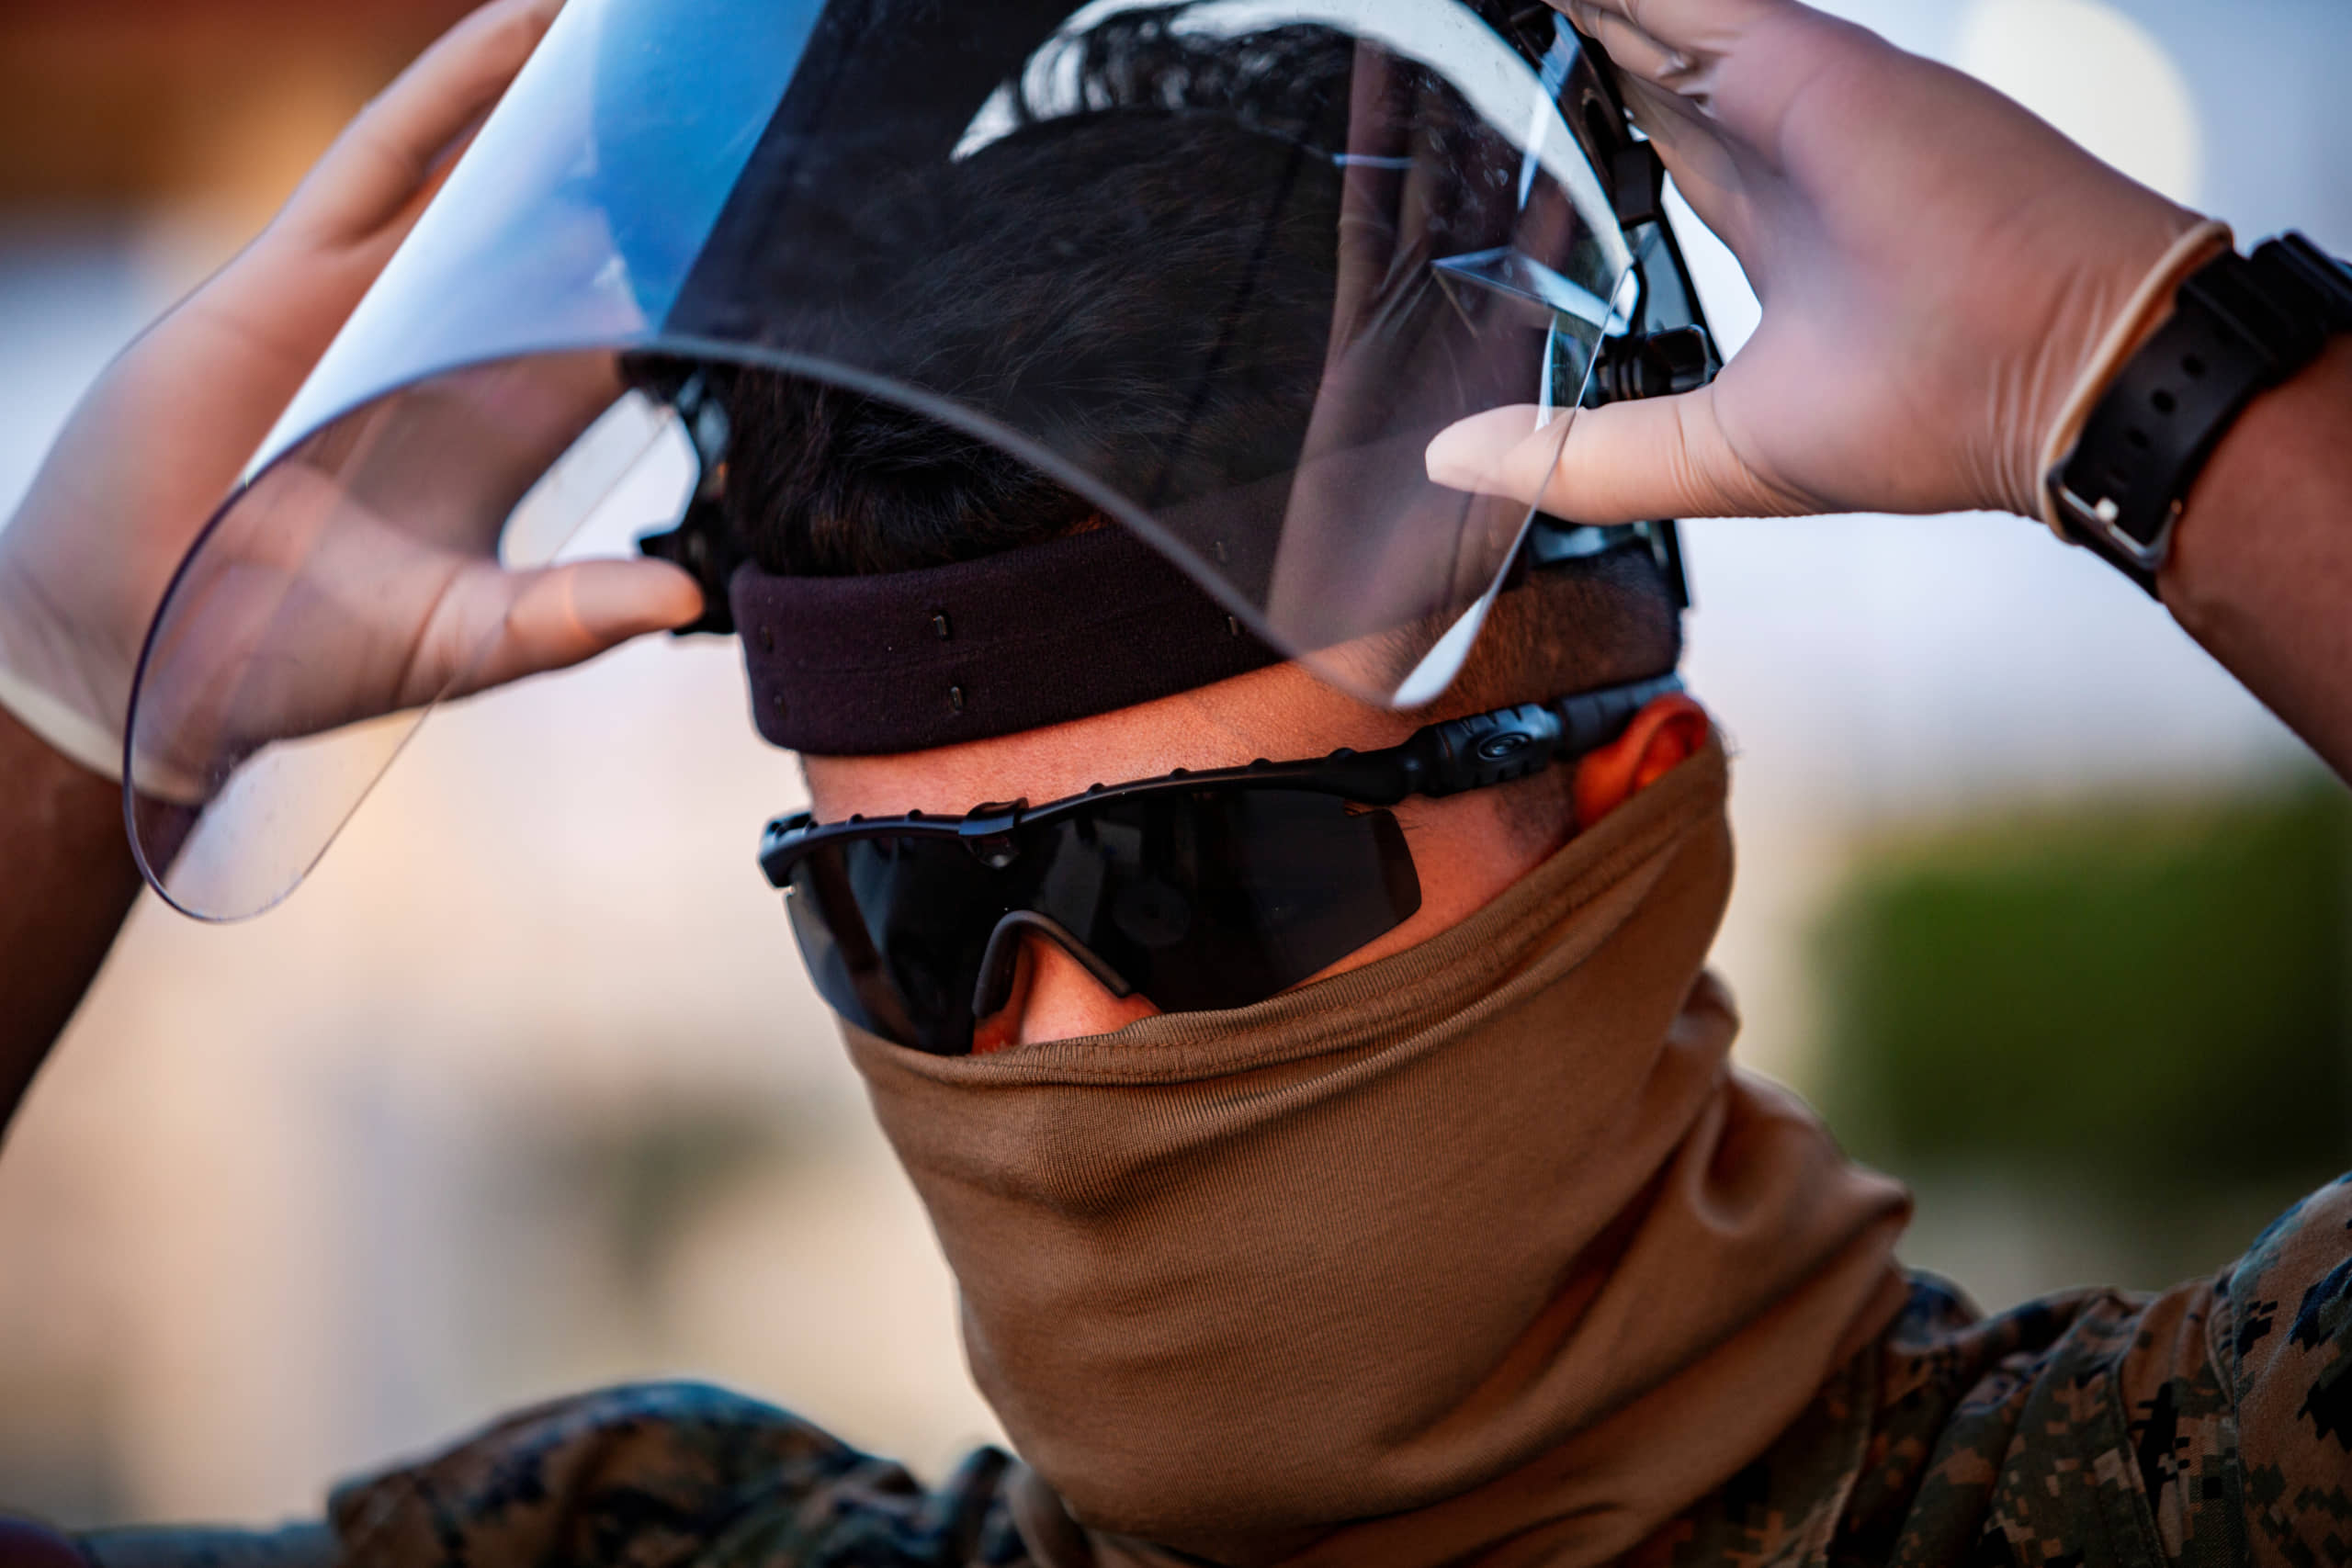 A U.S. Marine dons personal protective equipment (PPE) to begin screening incoming personnel in response to the increased threat of COVID-19 at Camp Foster, in Okinawa Prefecture, in April 10. | U.S. MARINE CORPS / VIA REUTERS